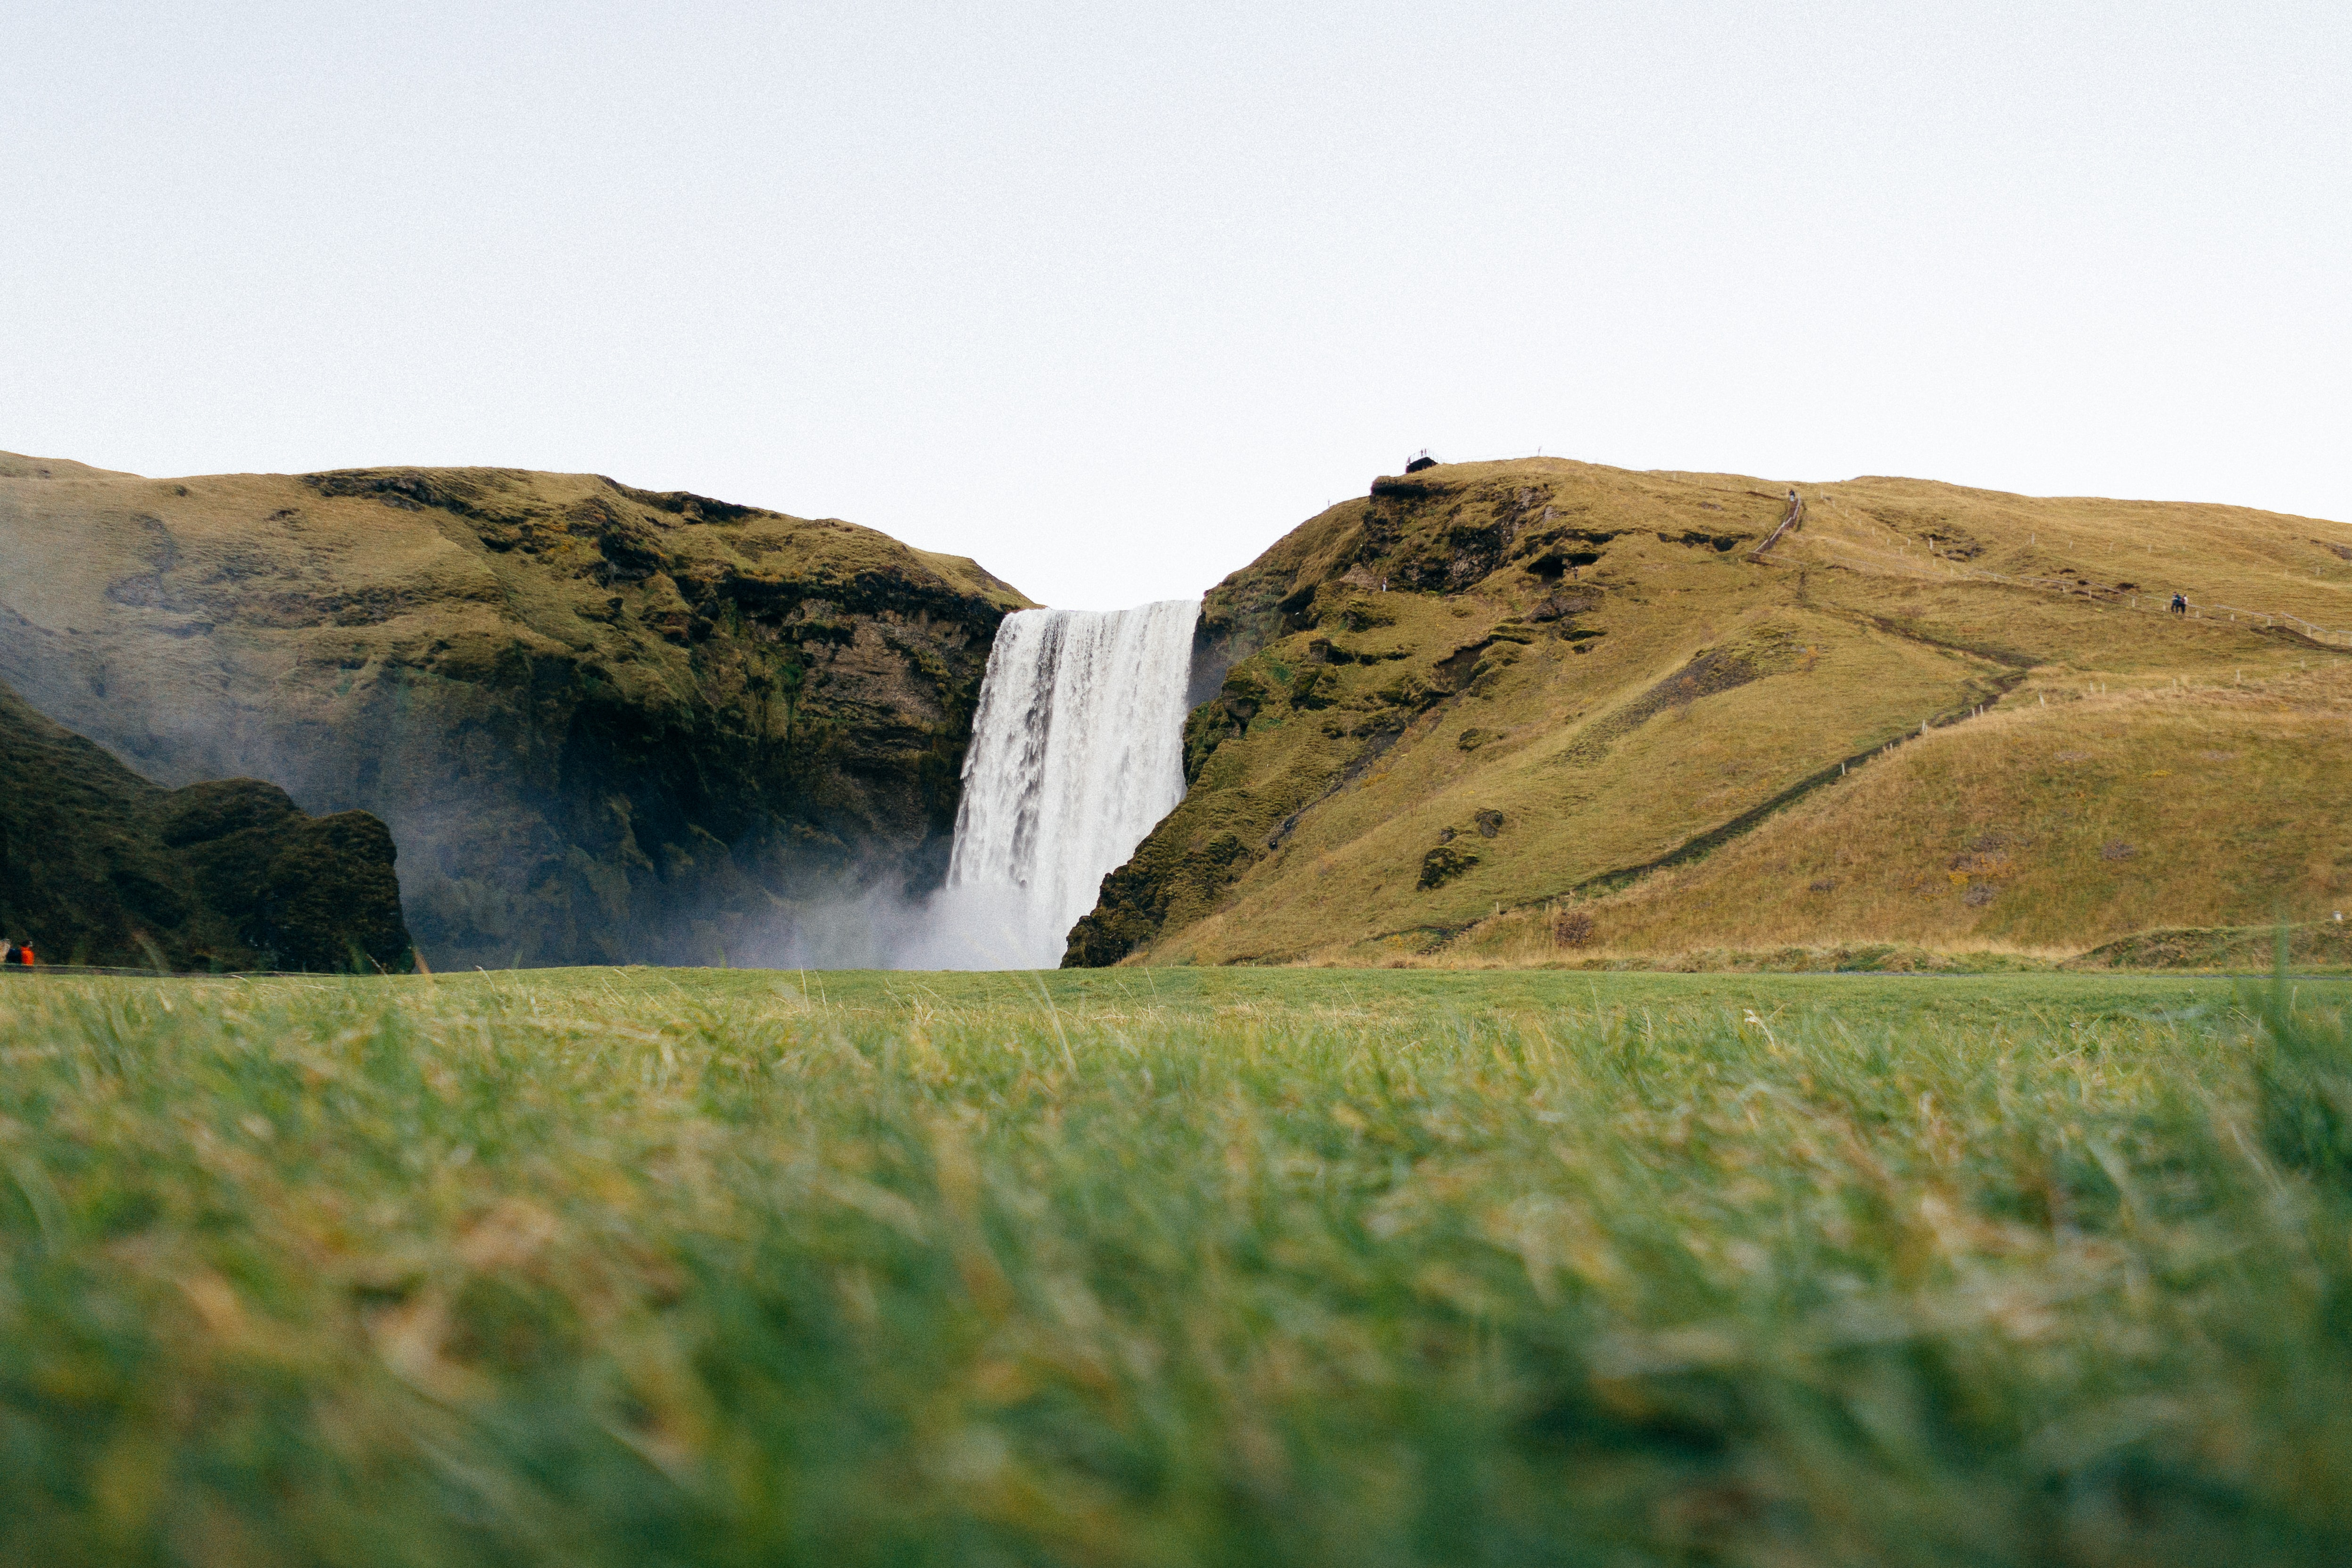 green grass field near waterfalls